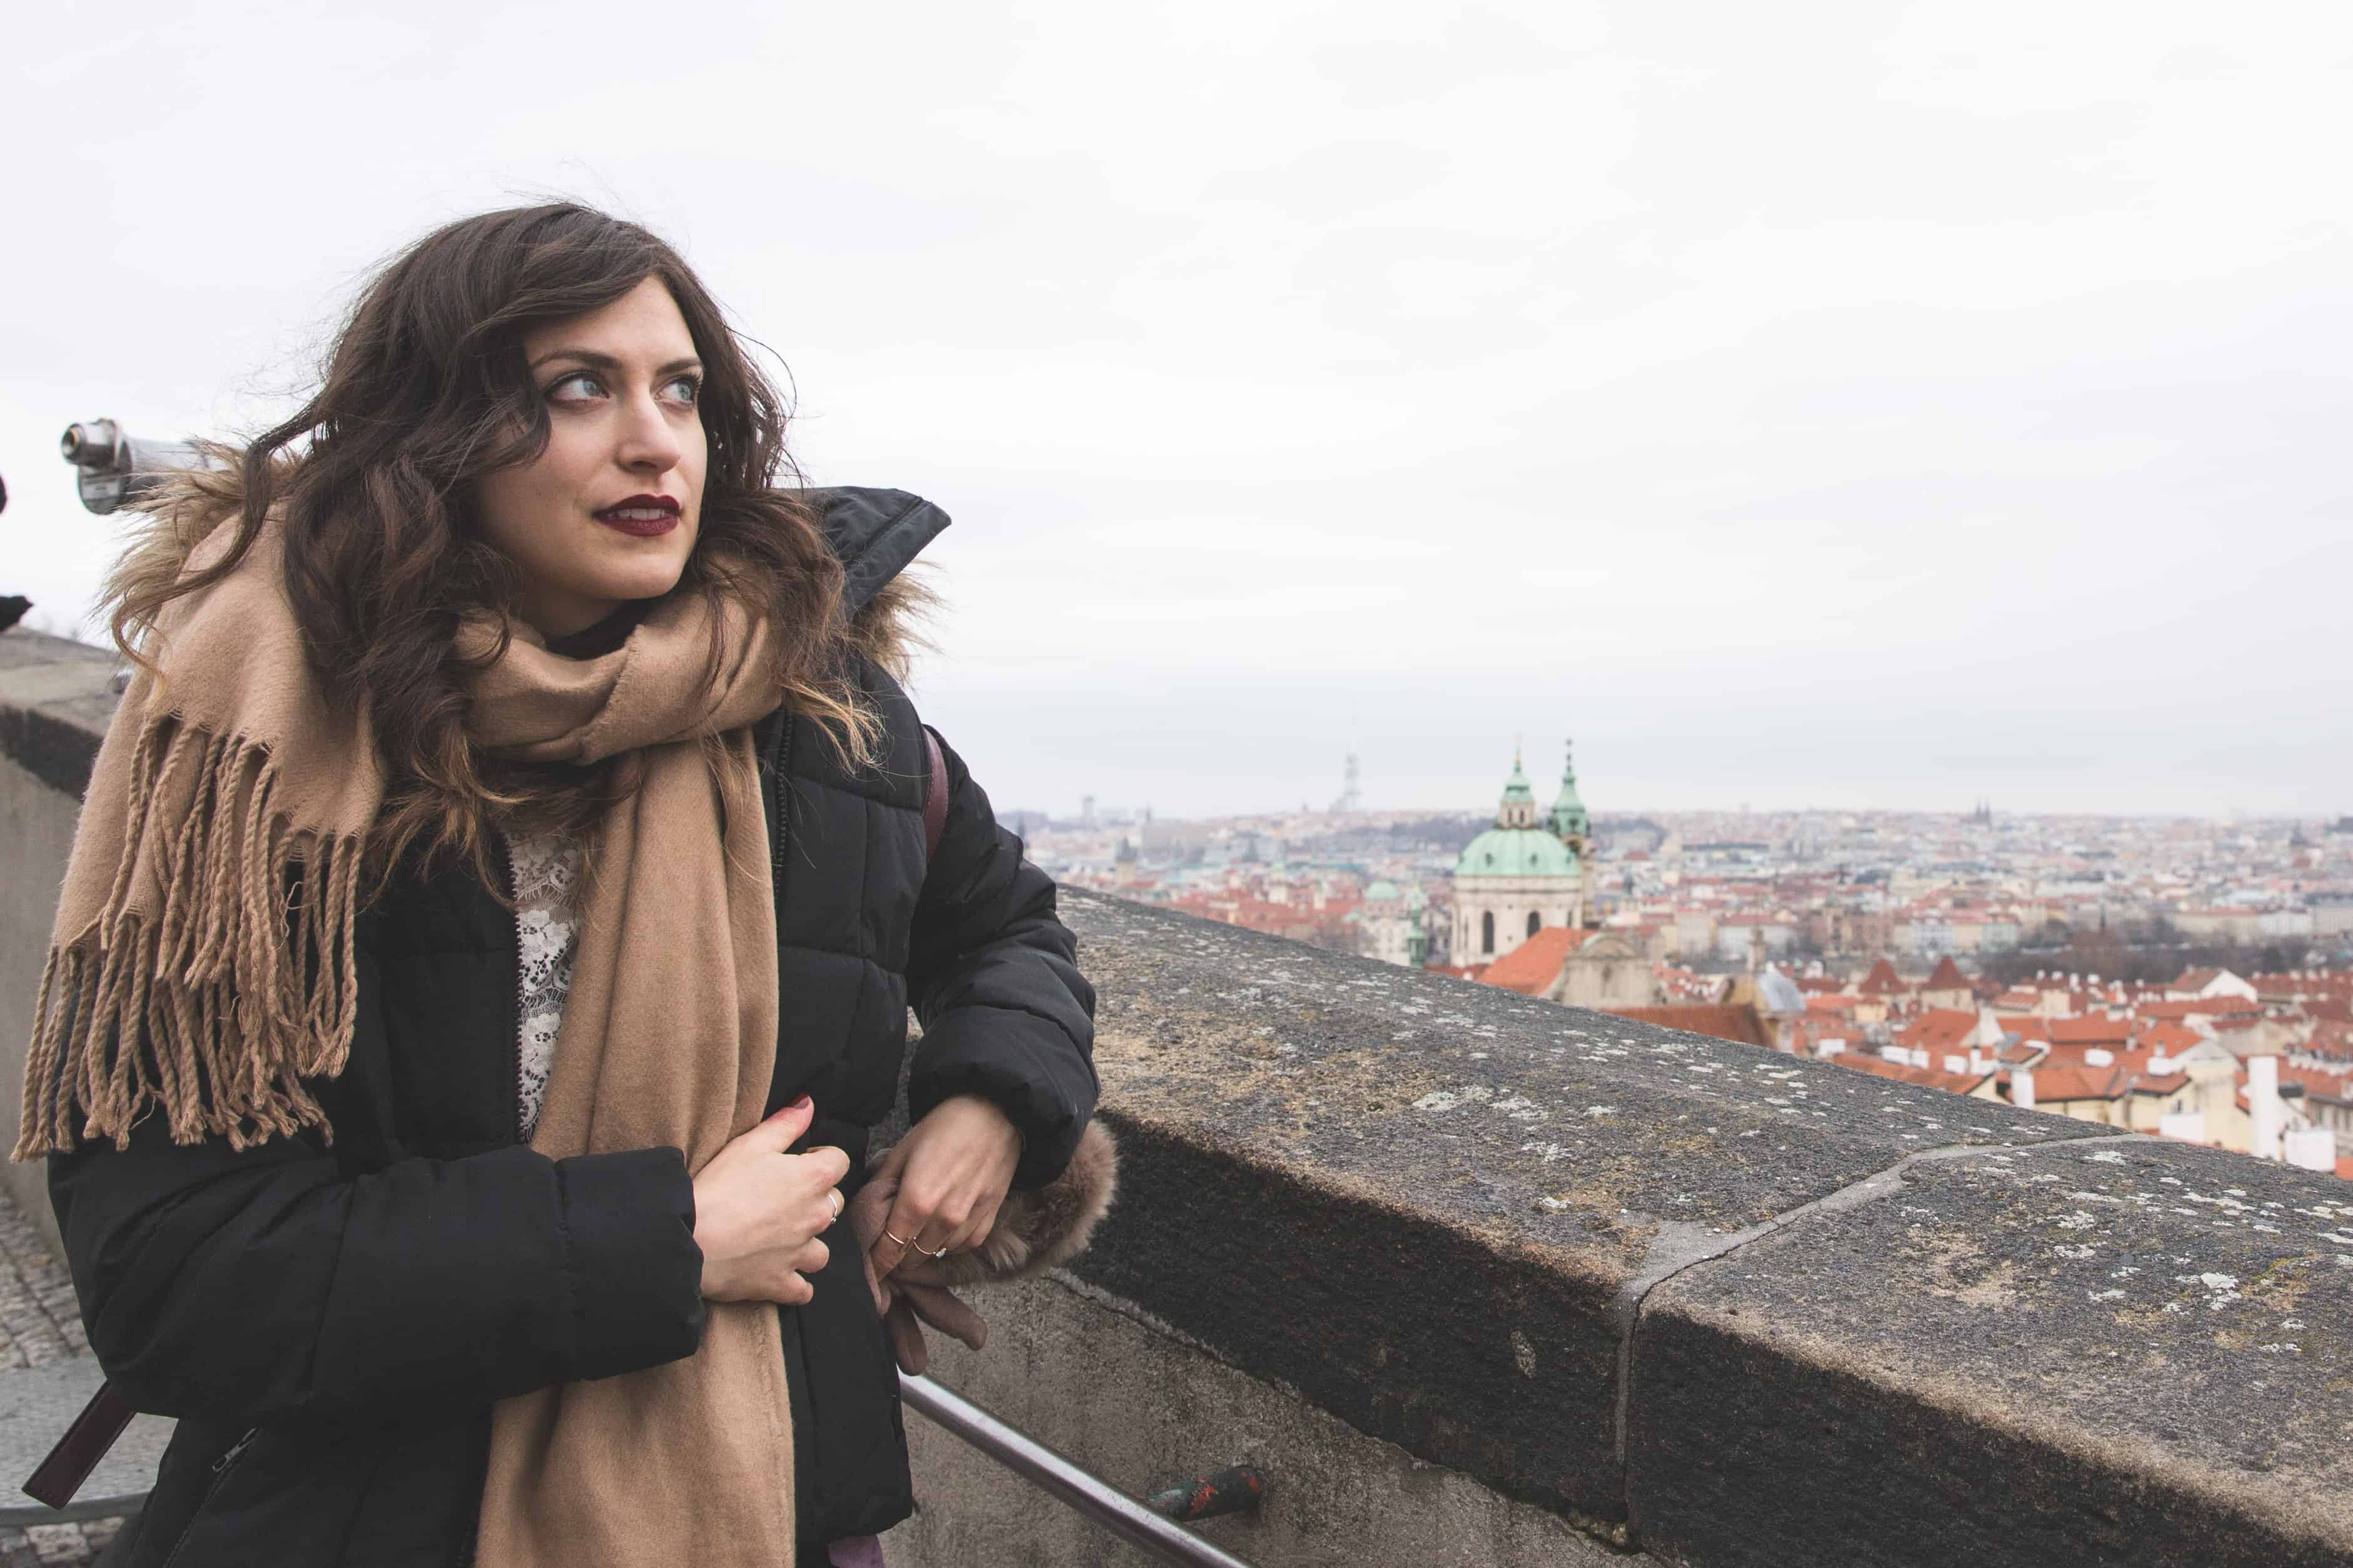 Kelsey in Prague wearing a scarf and jacket - crucial items during her 3 months in Europe in winter!